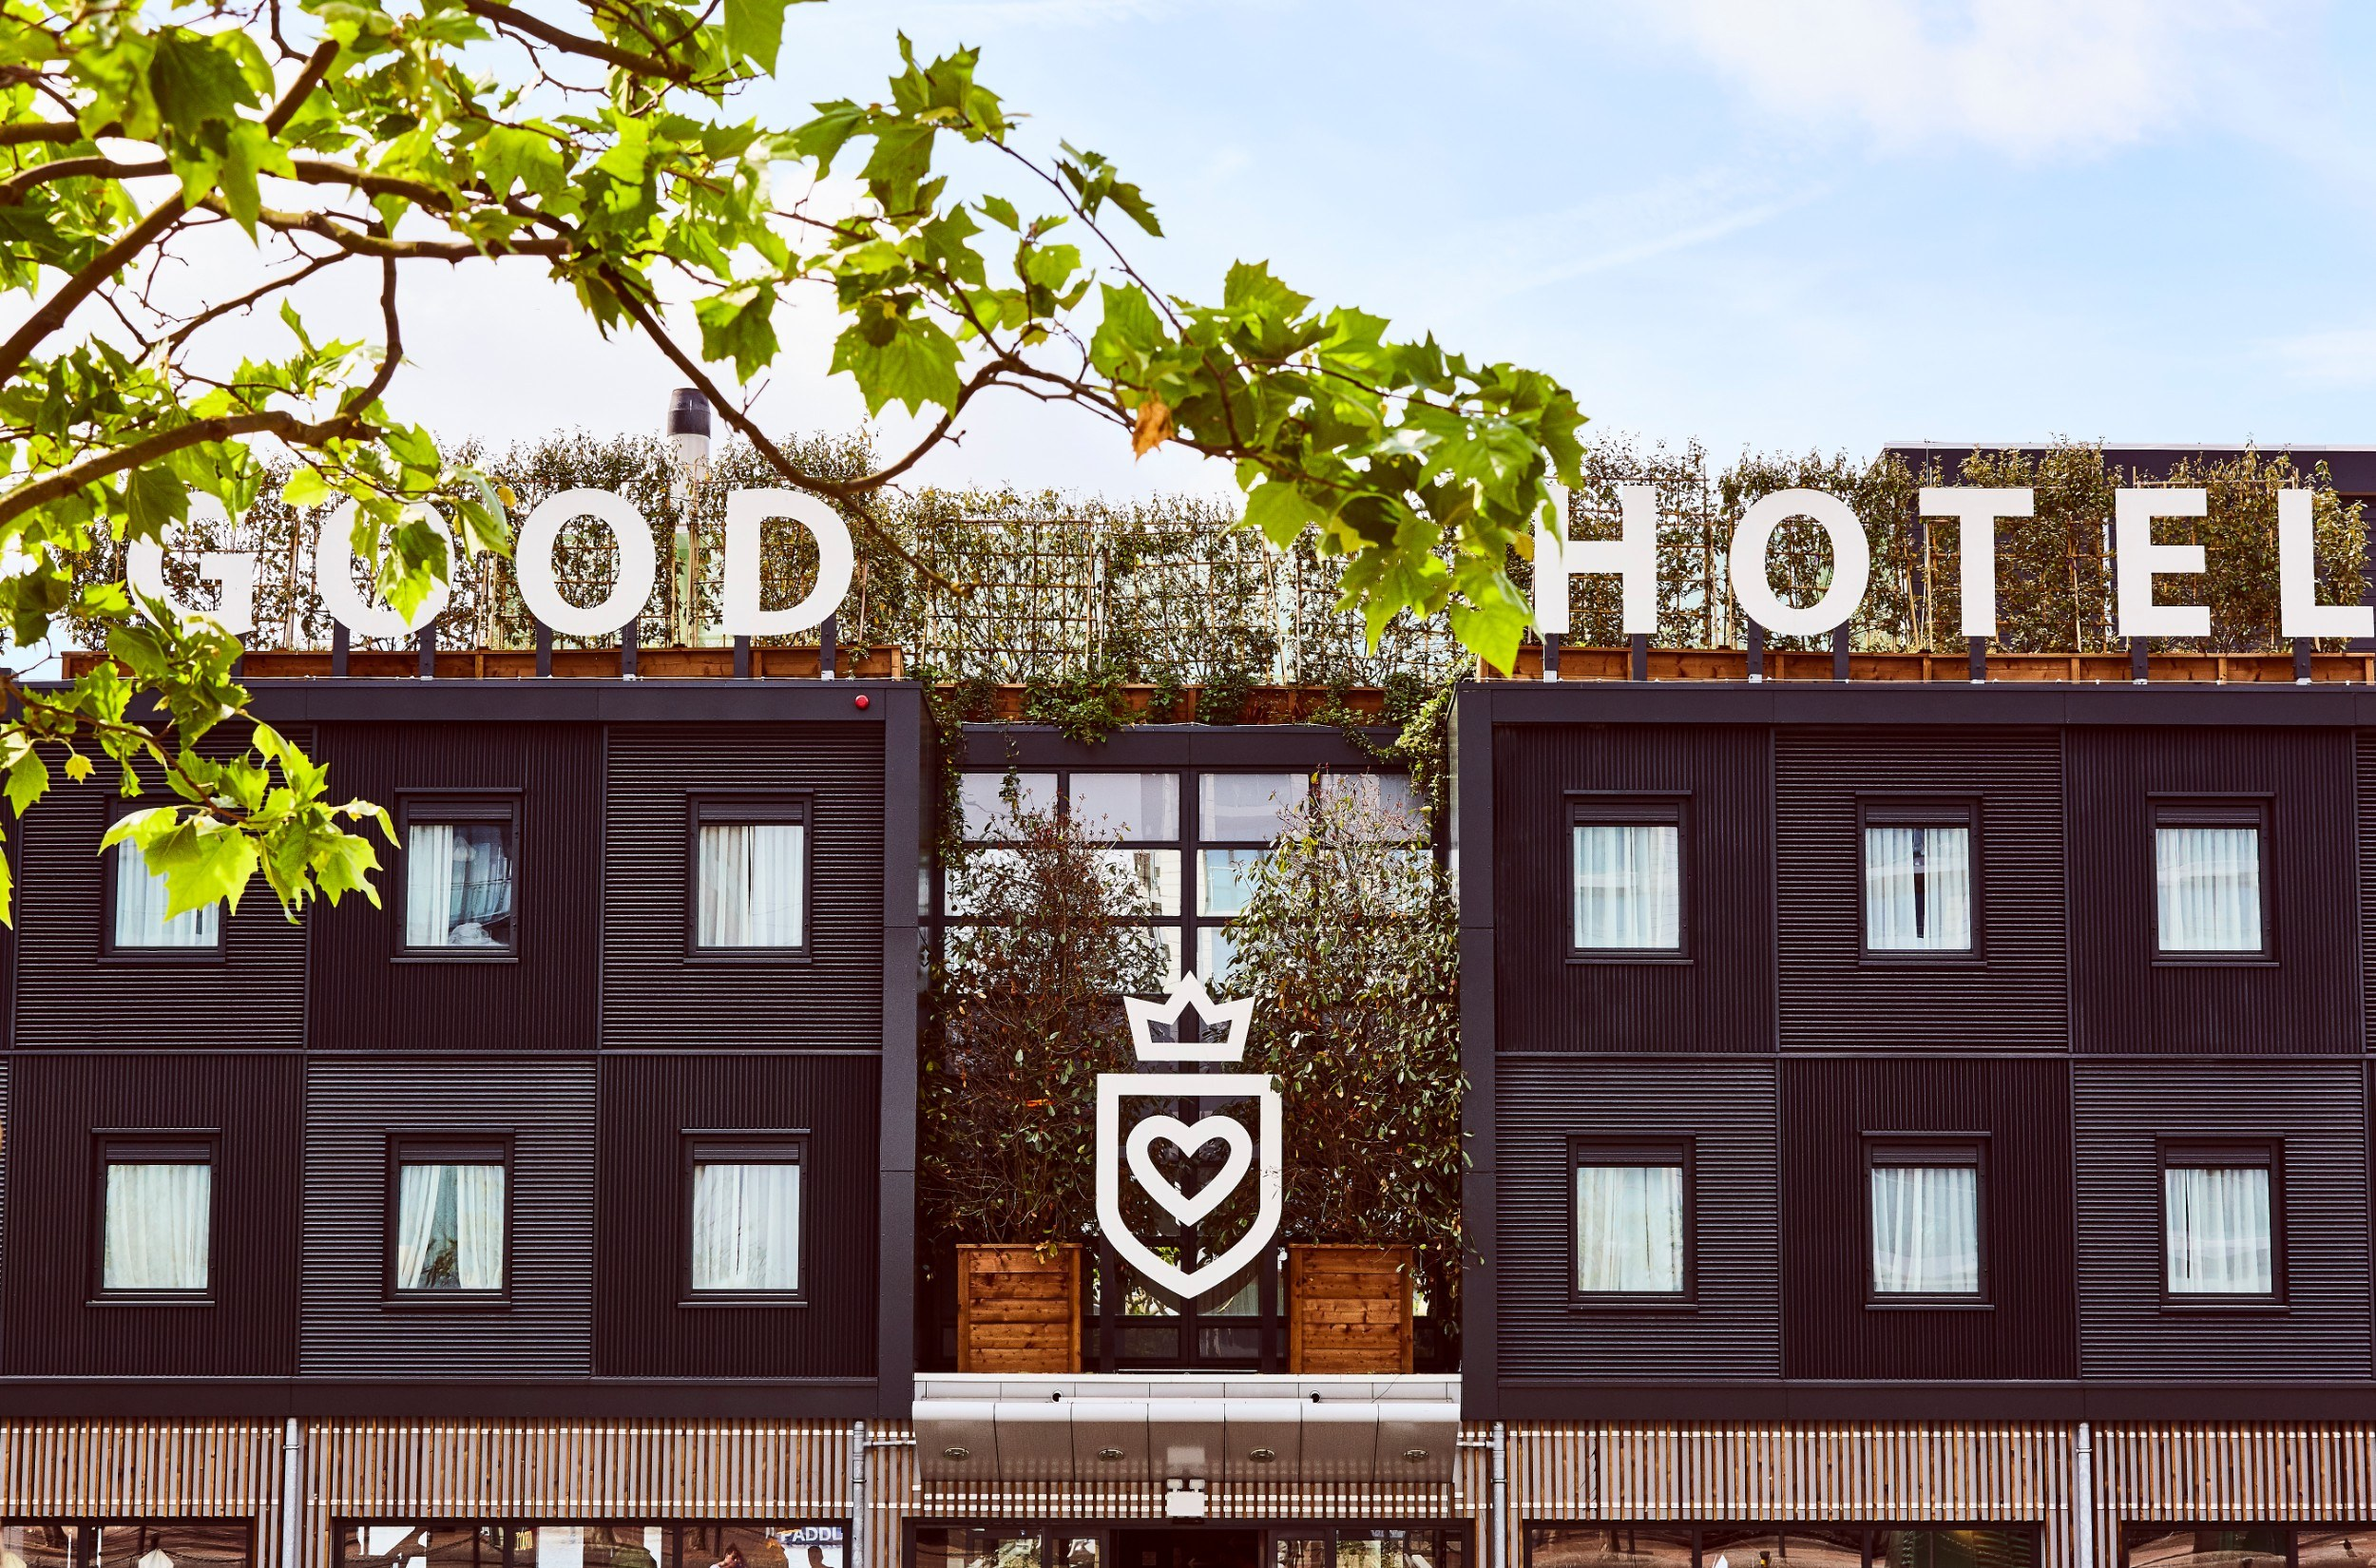 The front of the Good Hotel